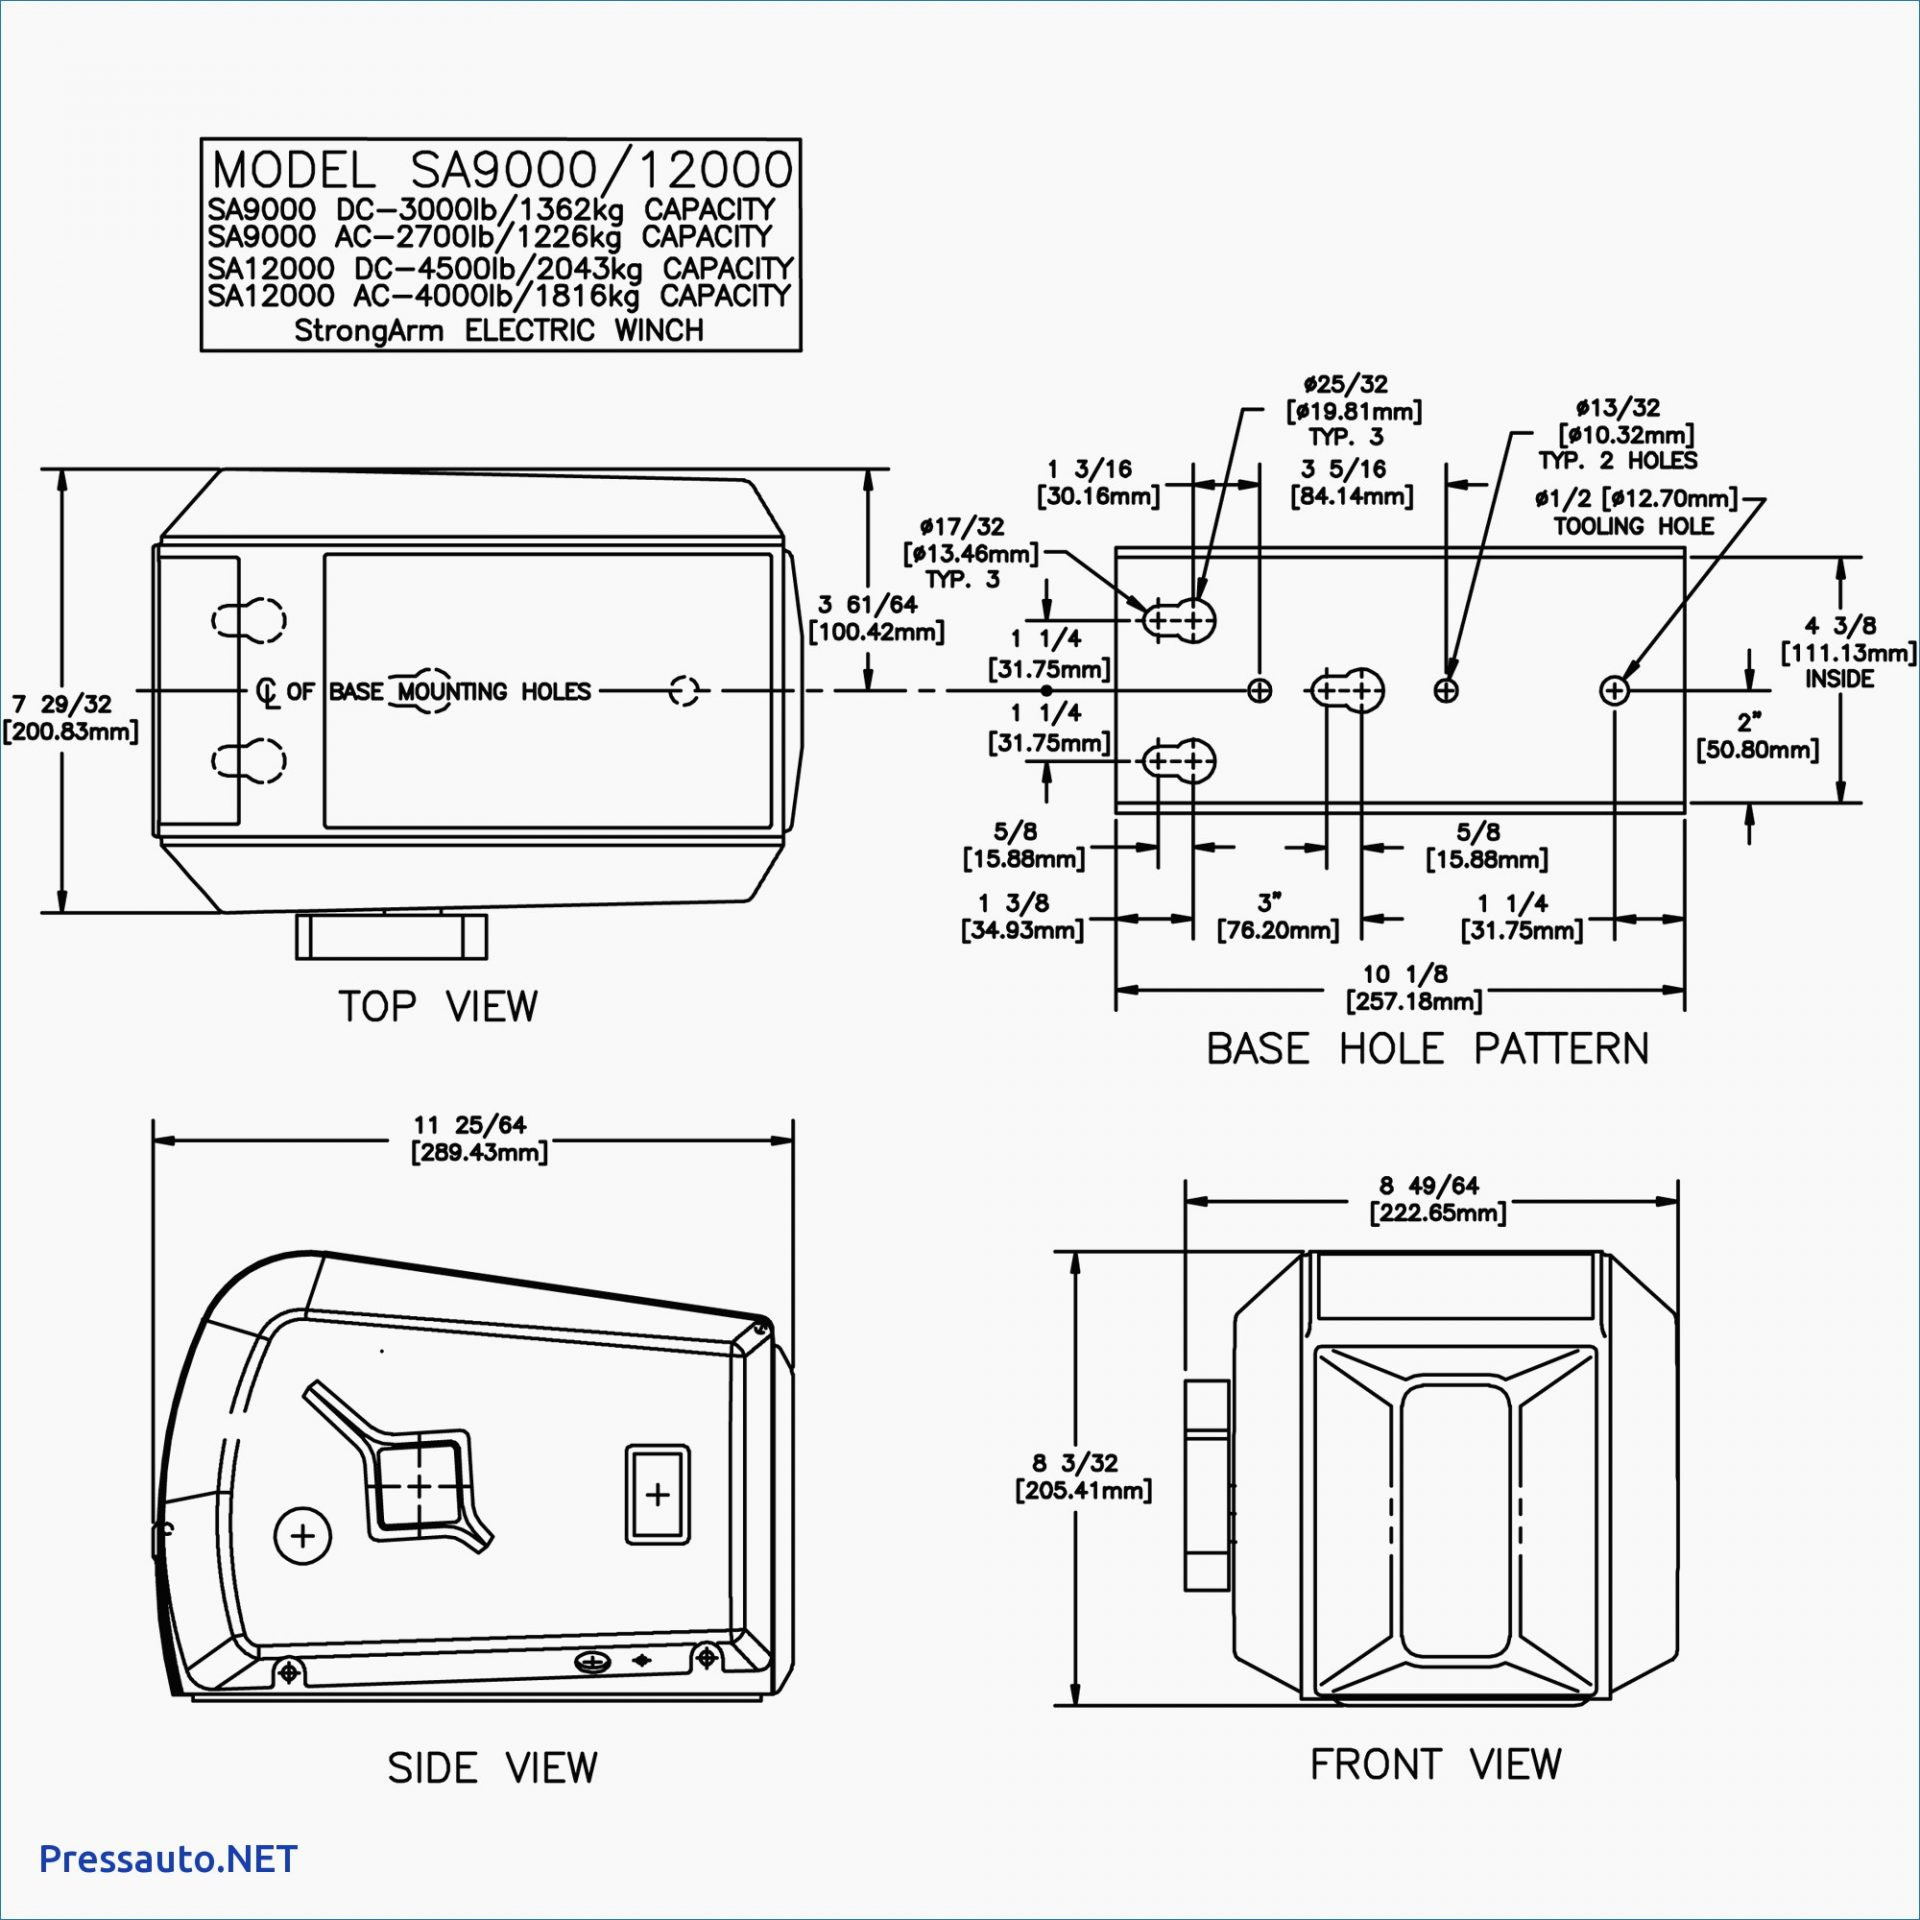 winch wireless remote control wiring diagram Download-Wiring Diagram For Warn Winch Best Winch Solenoid Wiring Diagram Roc Grp 9-l